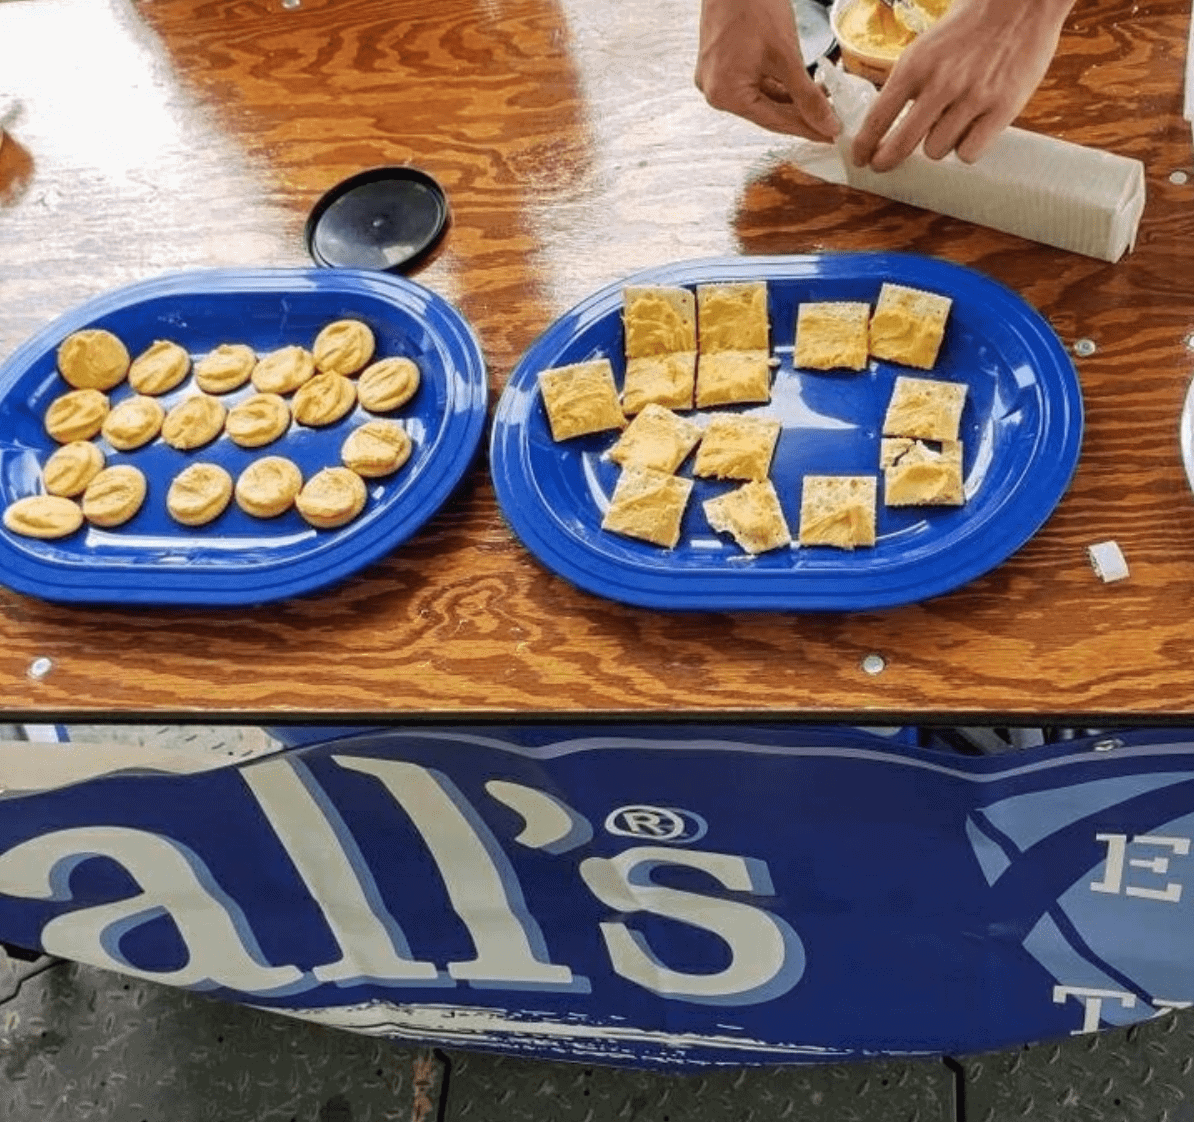 Hall's Beer Cheese + Tailgating with Kroger Co.